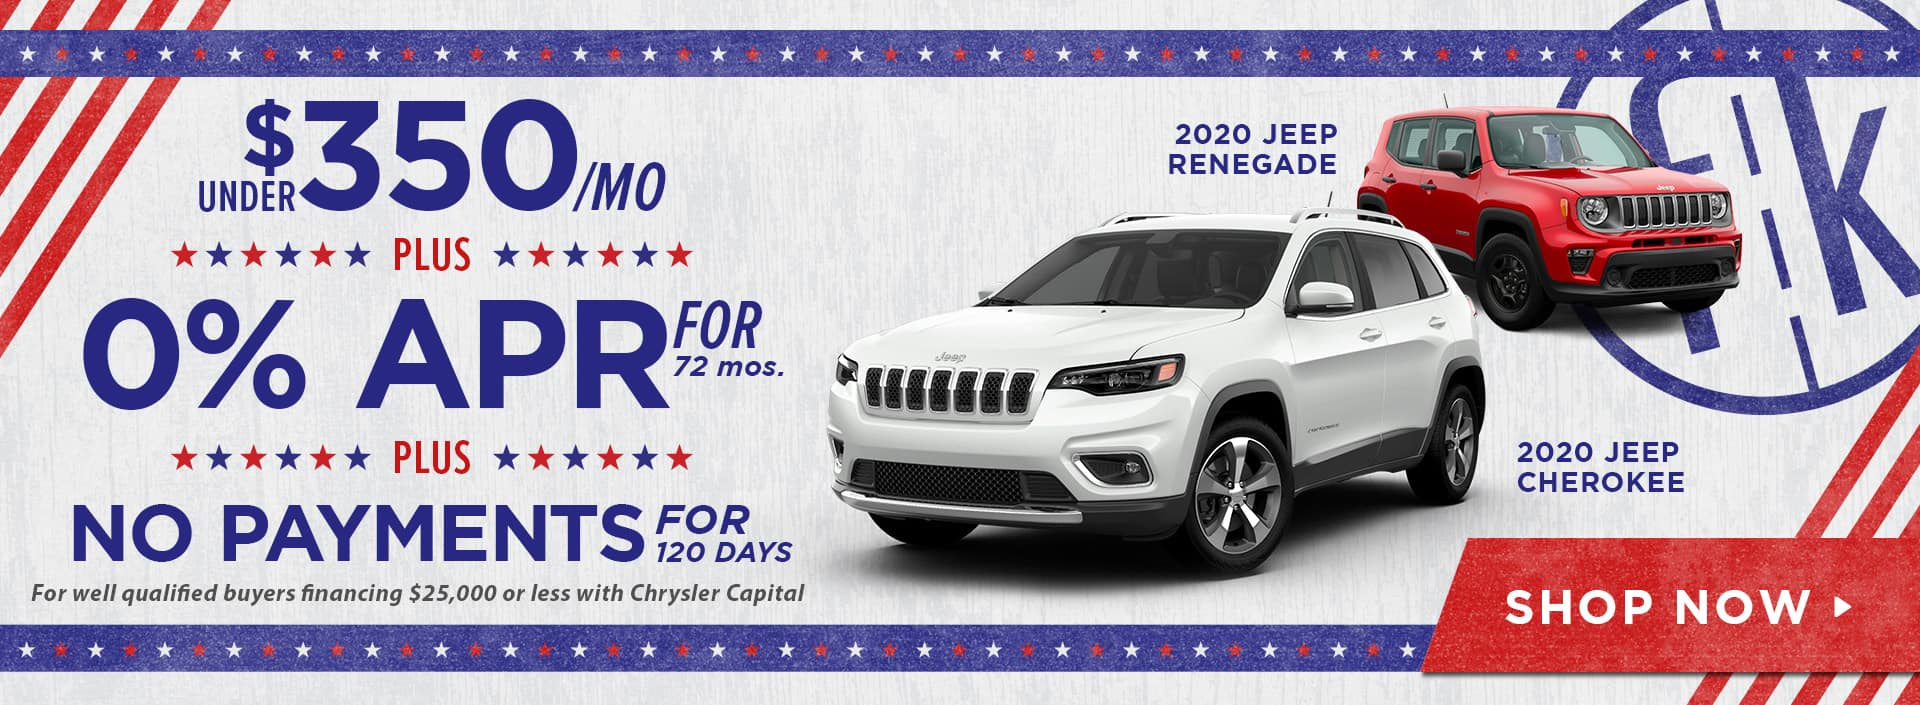 Under $350/mo. PLUS 0% for 72 mos. PLUS No Payments for 120 Days Jeep Offer